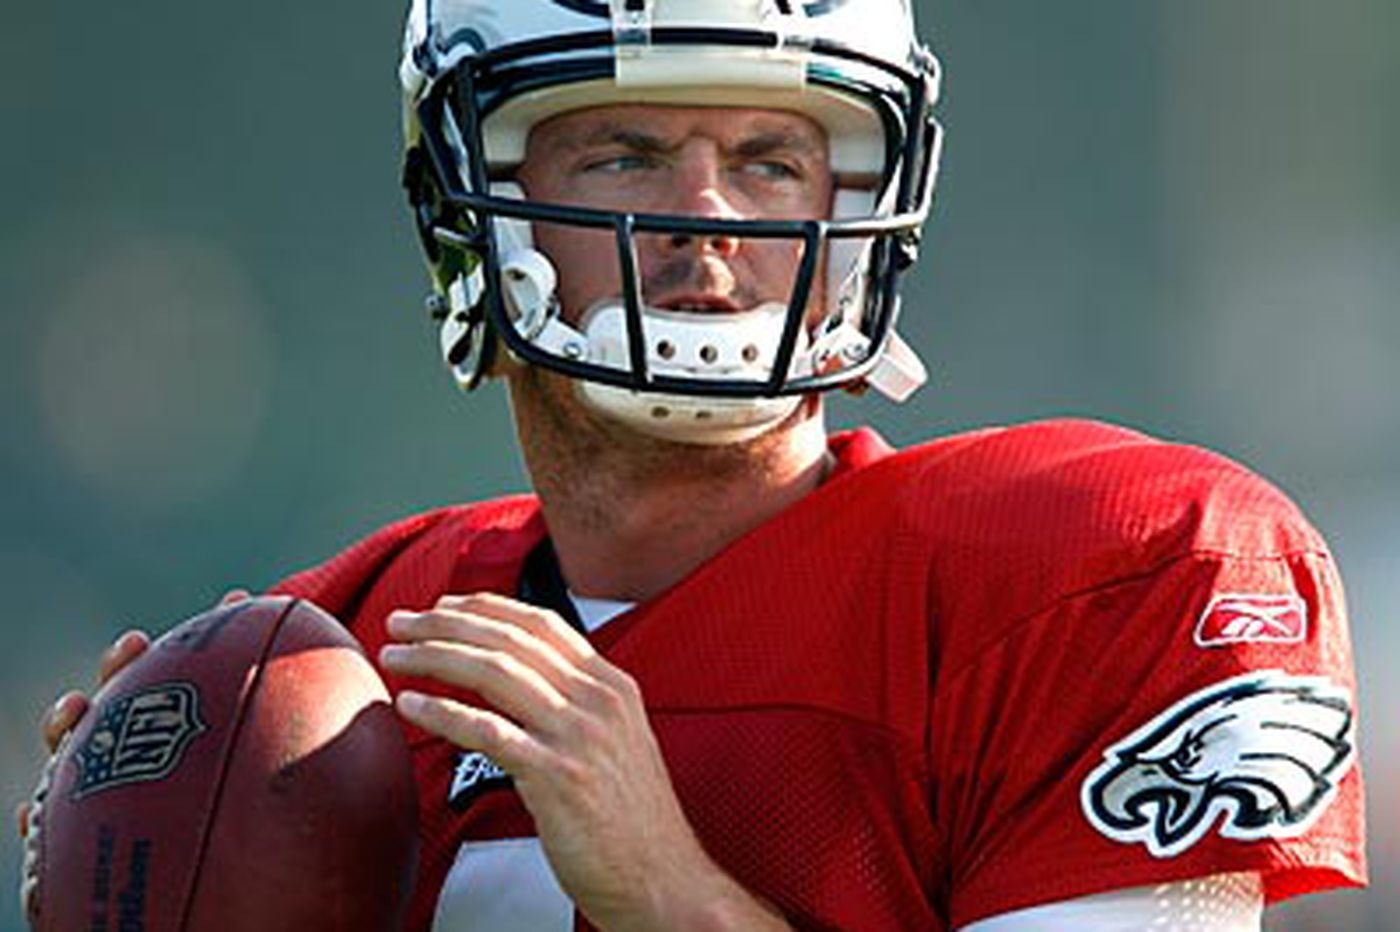 Eagles' Lurie: Kevin Kolb era would have started in '09 if Donovan McNabb was tradable